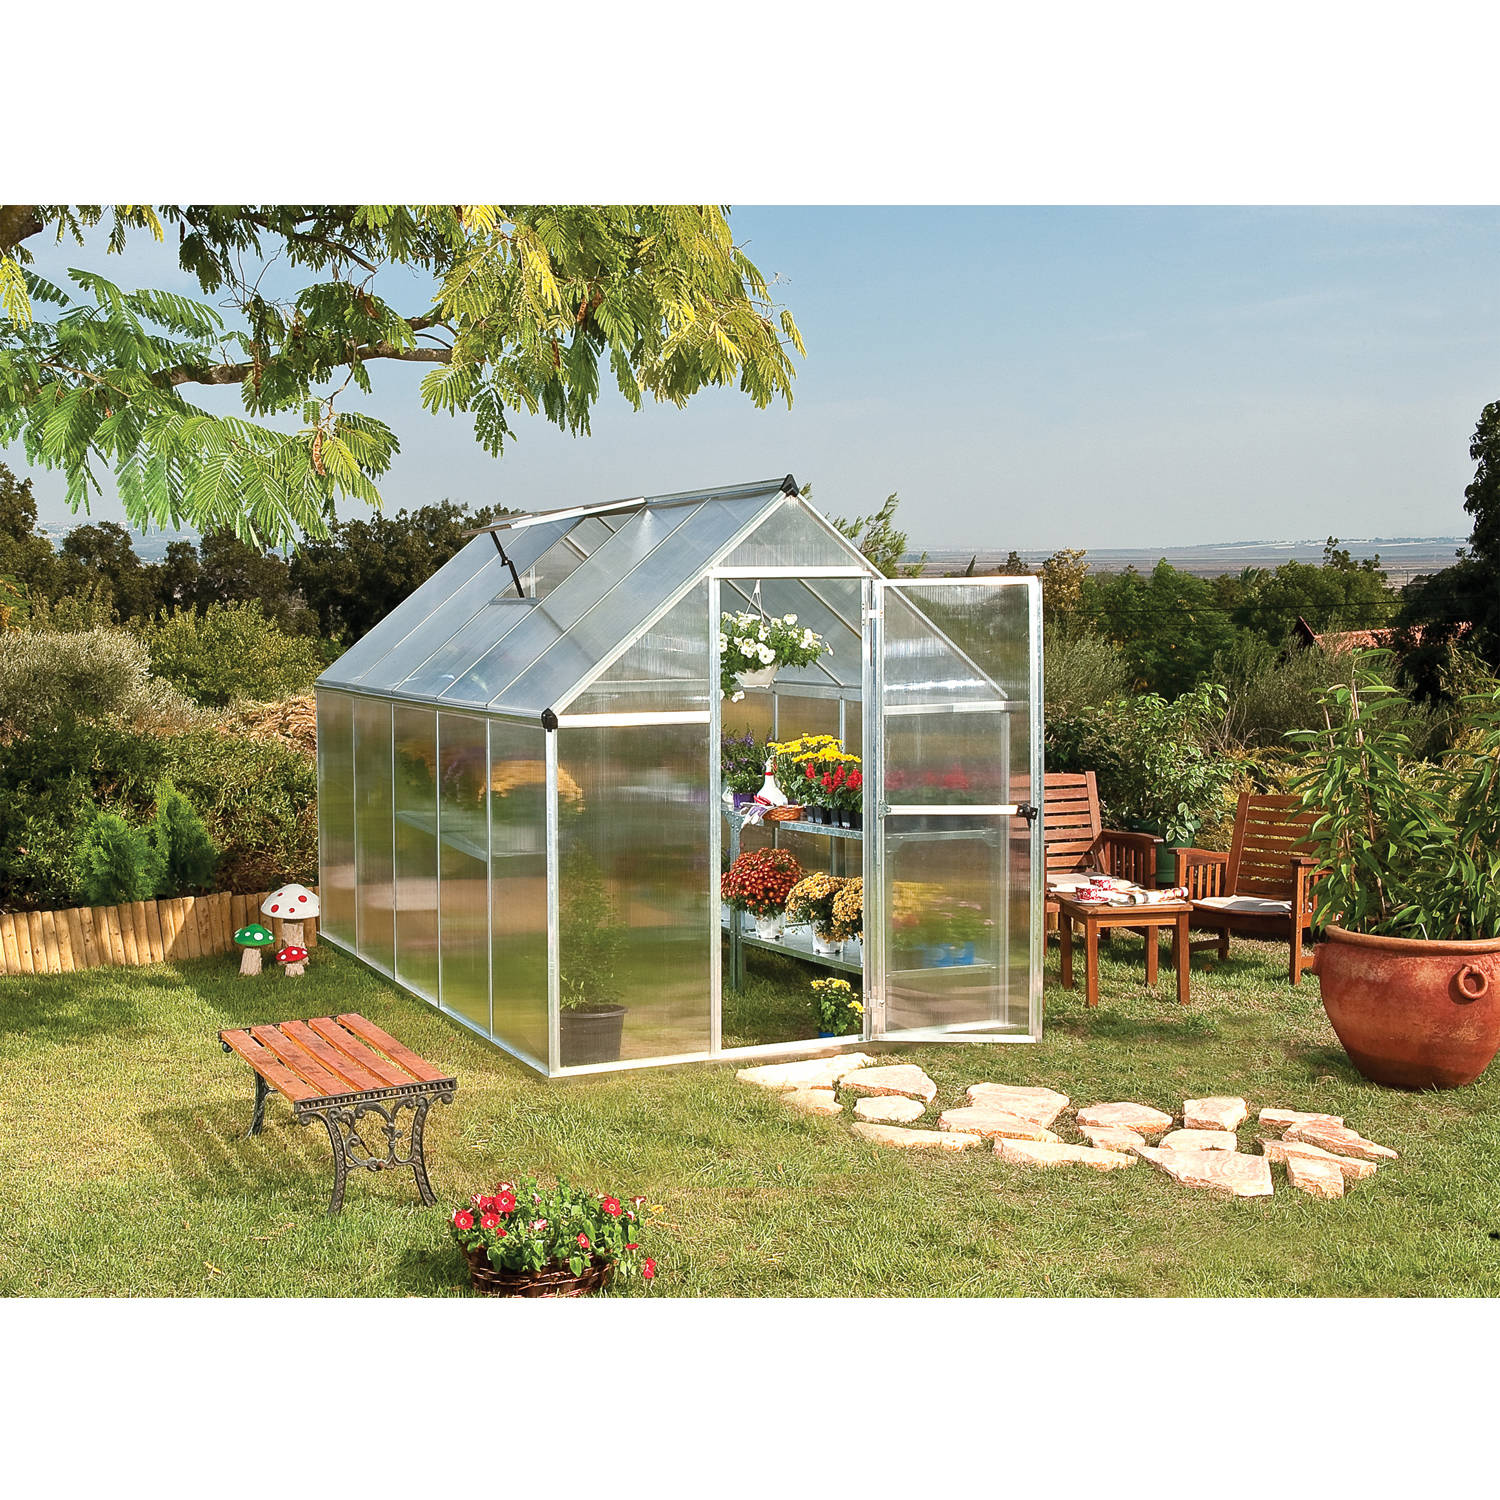 Palram Mythos Greenhouse, 6' x 10', Silver by Palram